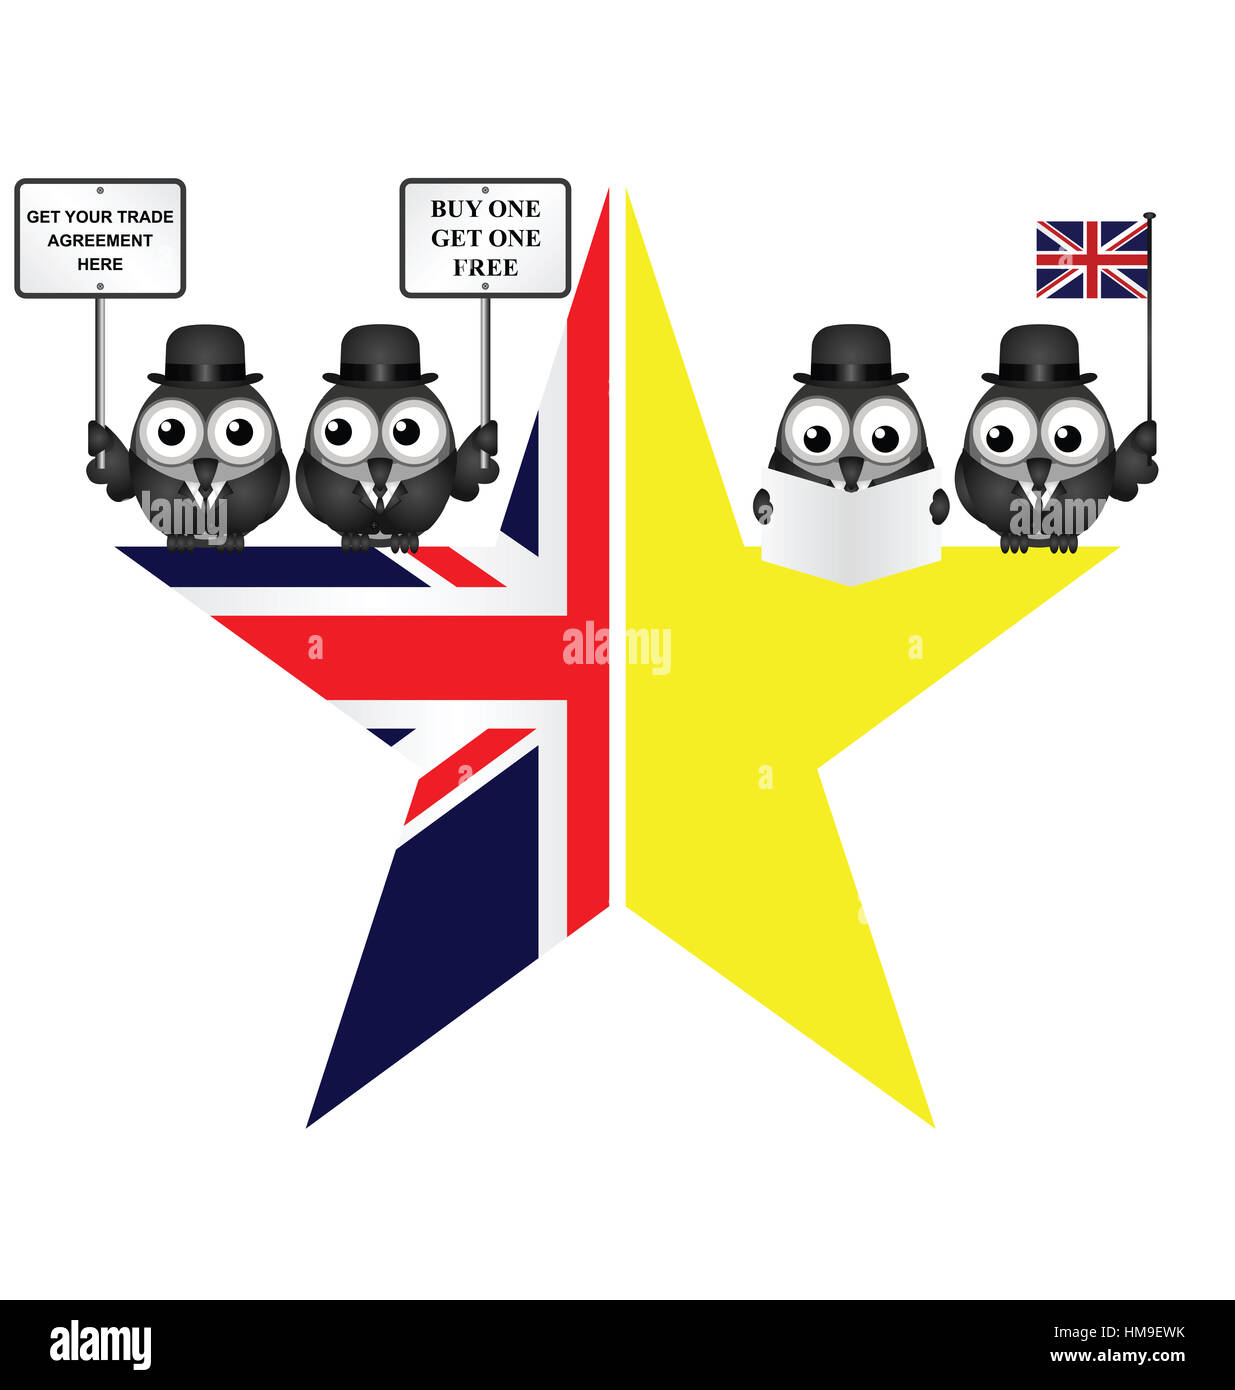 Comical UK and EU split star representing the United Kingdom exit from the European Union Stock Photo